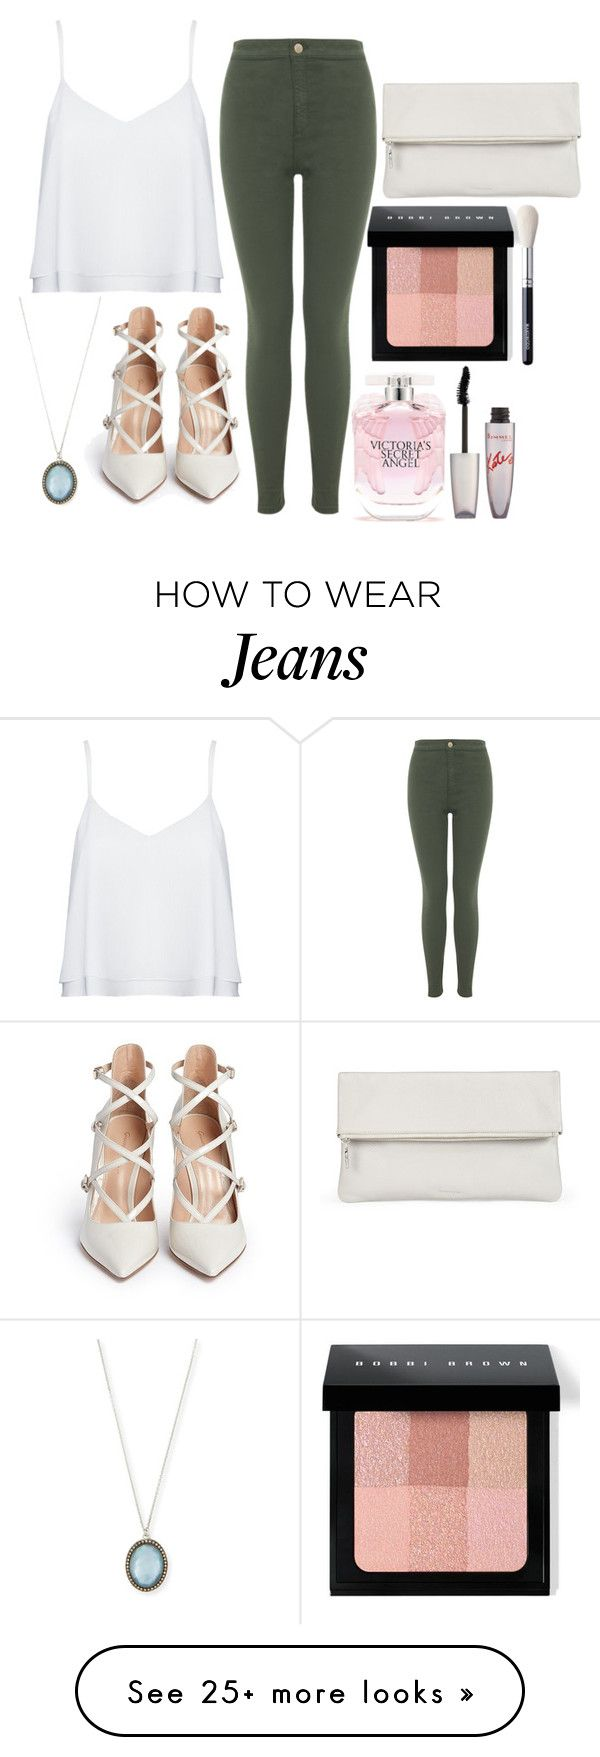 """olive jeans"" by sarahbiyrouti on Polyvore featuring Alice + Olivia, Miss Selfridge, Gianvito Rossi, Armenta, Victoria's Secret, Bobbi Brown Cosmetics, Rimmel, Whistles and white"